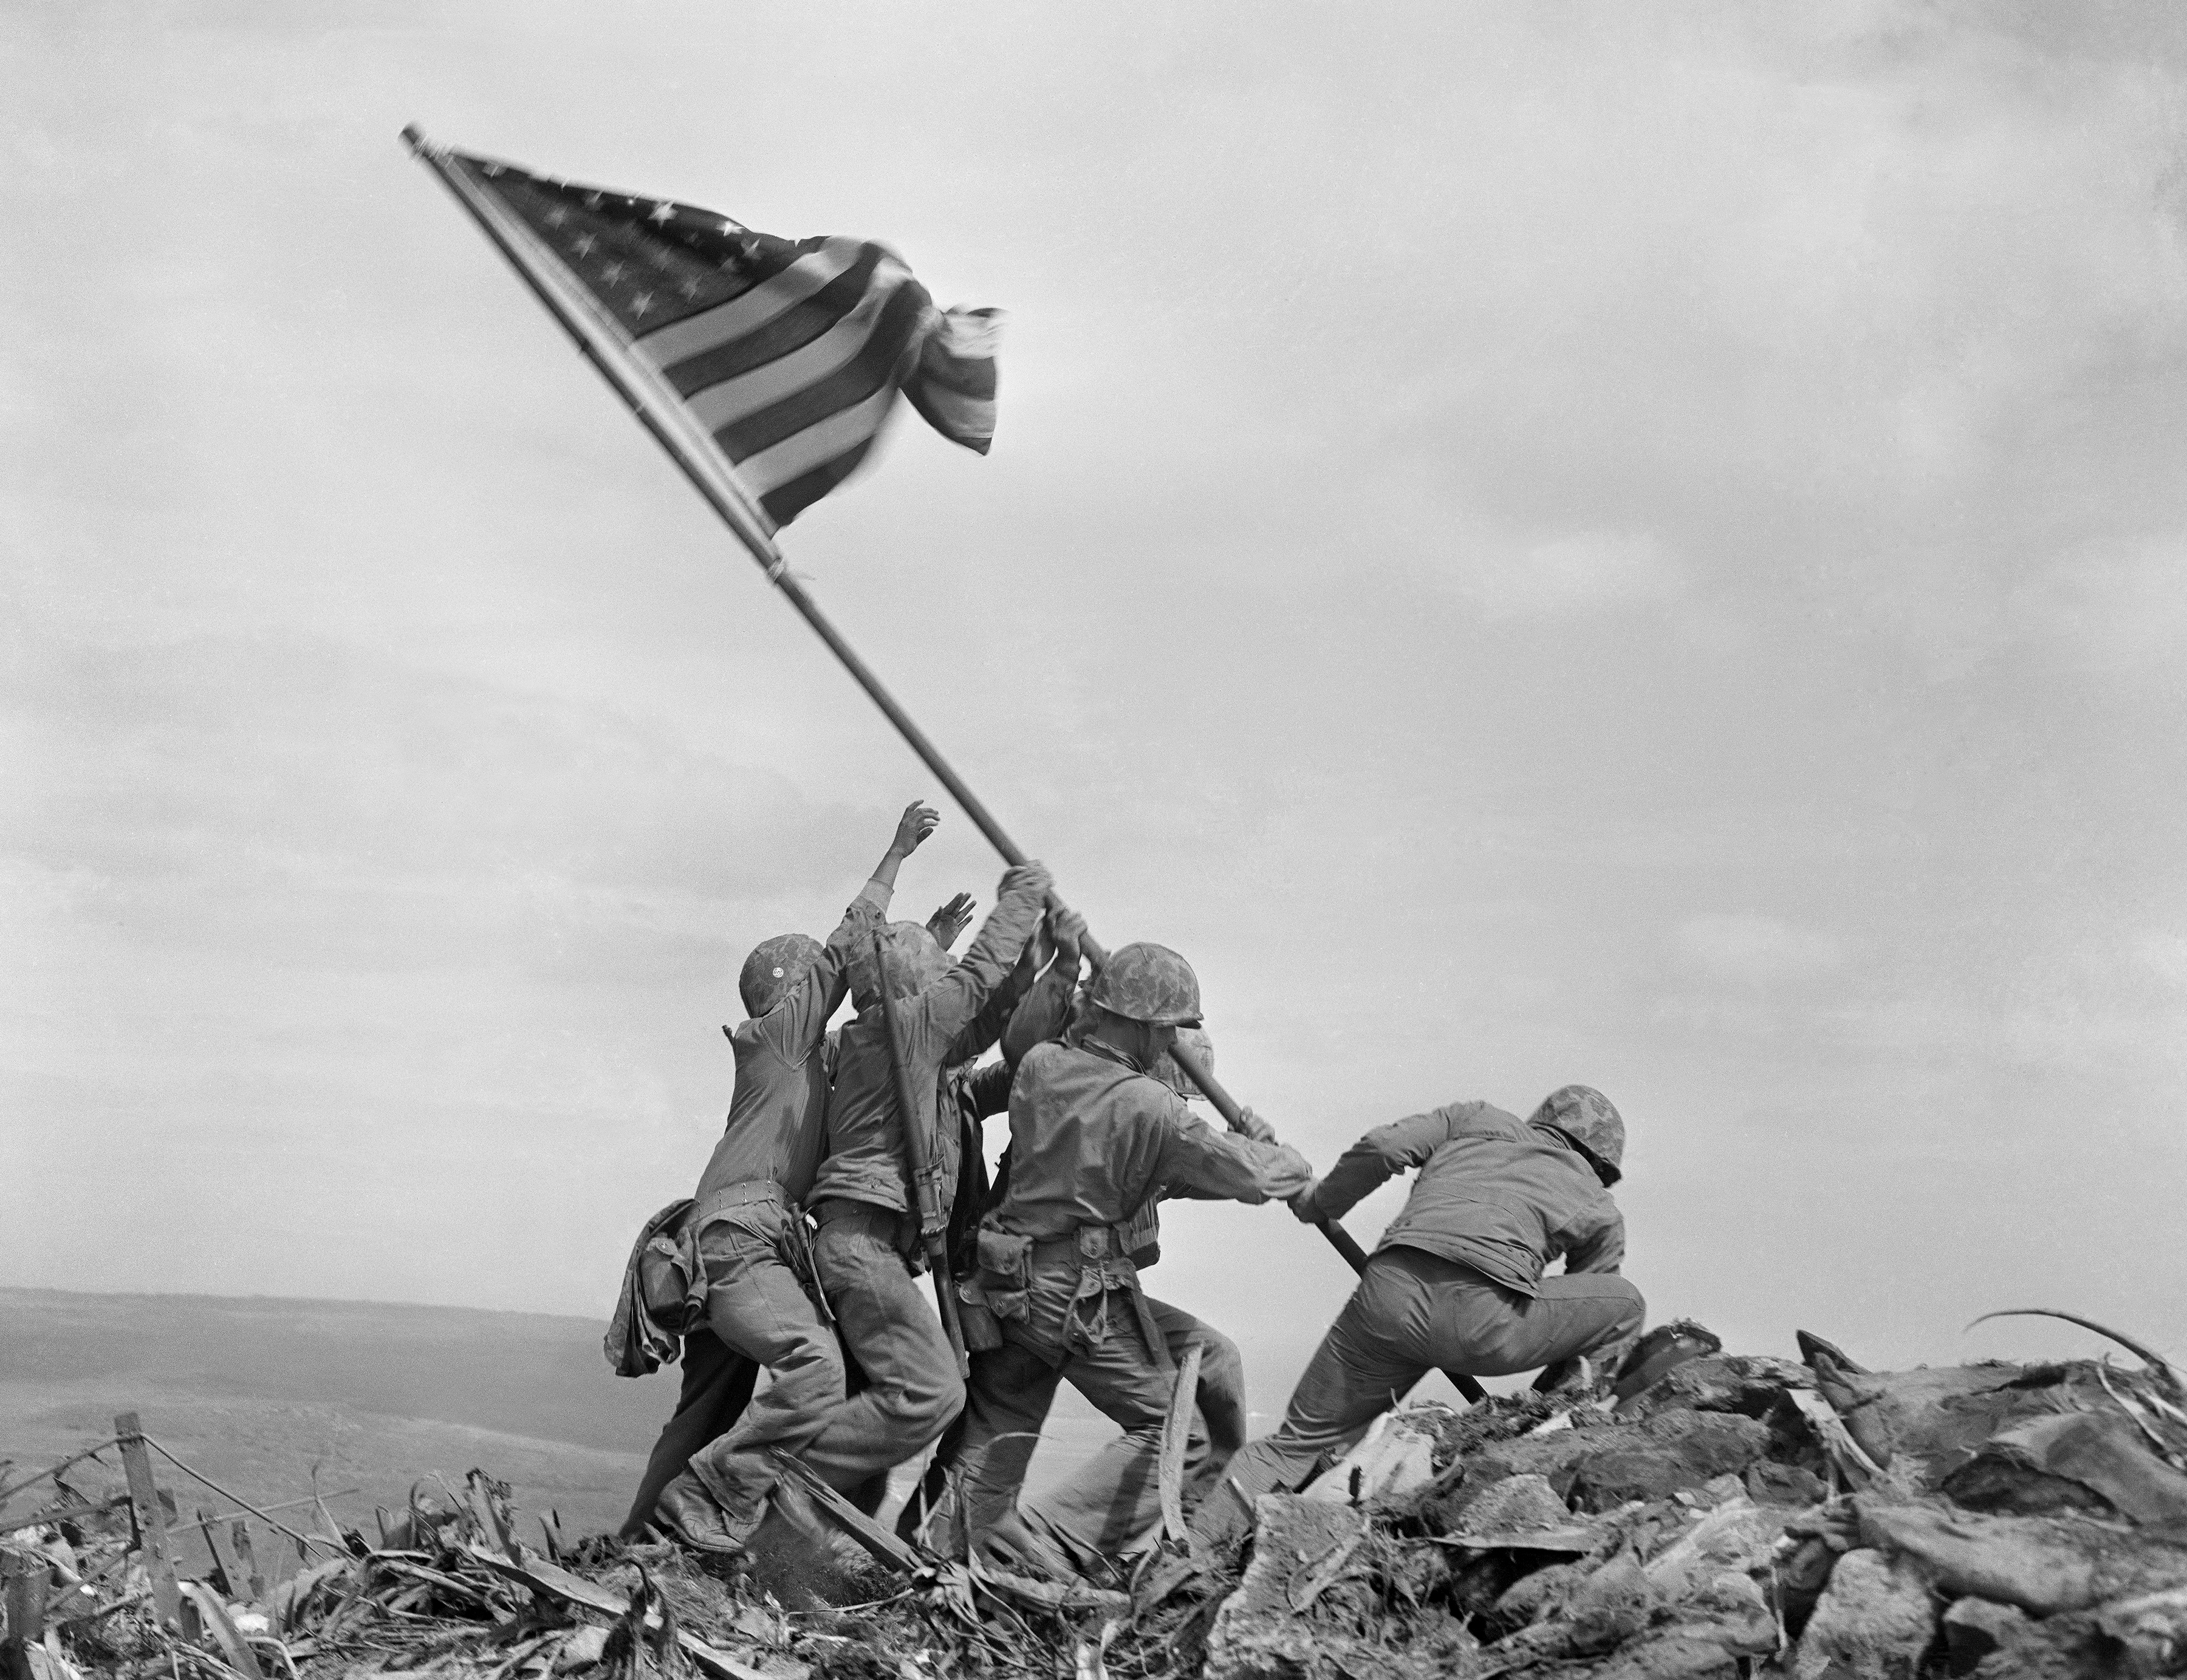 U.S. Marines raise a second, larger American flag atop Mt. Suribachi on the Japanese Island of Iwo Jima, Feb. 23, 1945. Three of the men in the photo were later killed in fighting on the island. This is the only photo to win the Pulitzer Prize in the year it was shot. (AP Photo/Joe Rosenthal)